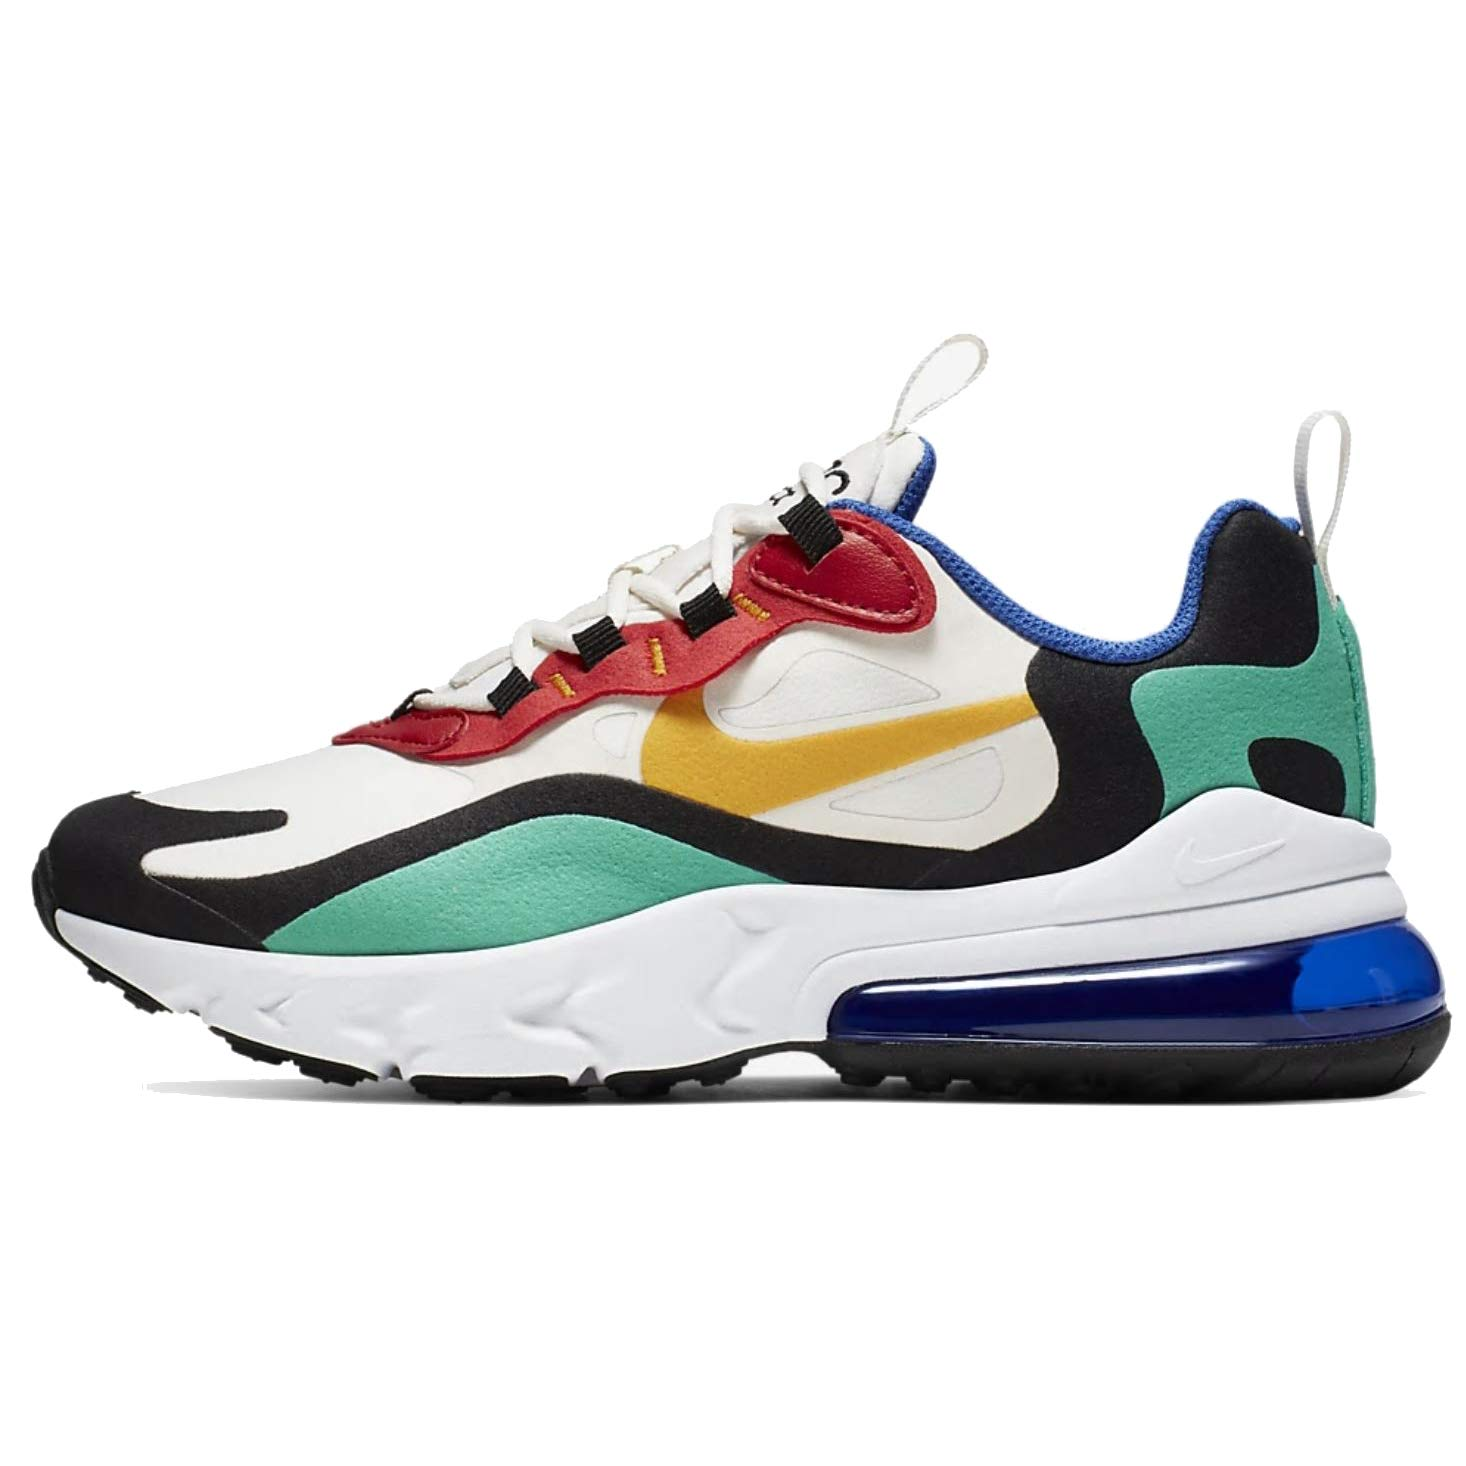 new arrival 358b9 4f144 Amazon.com | Nike Air Max 270 React (Kids) | Running